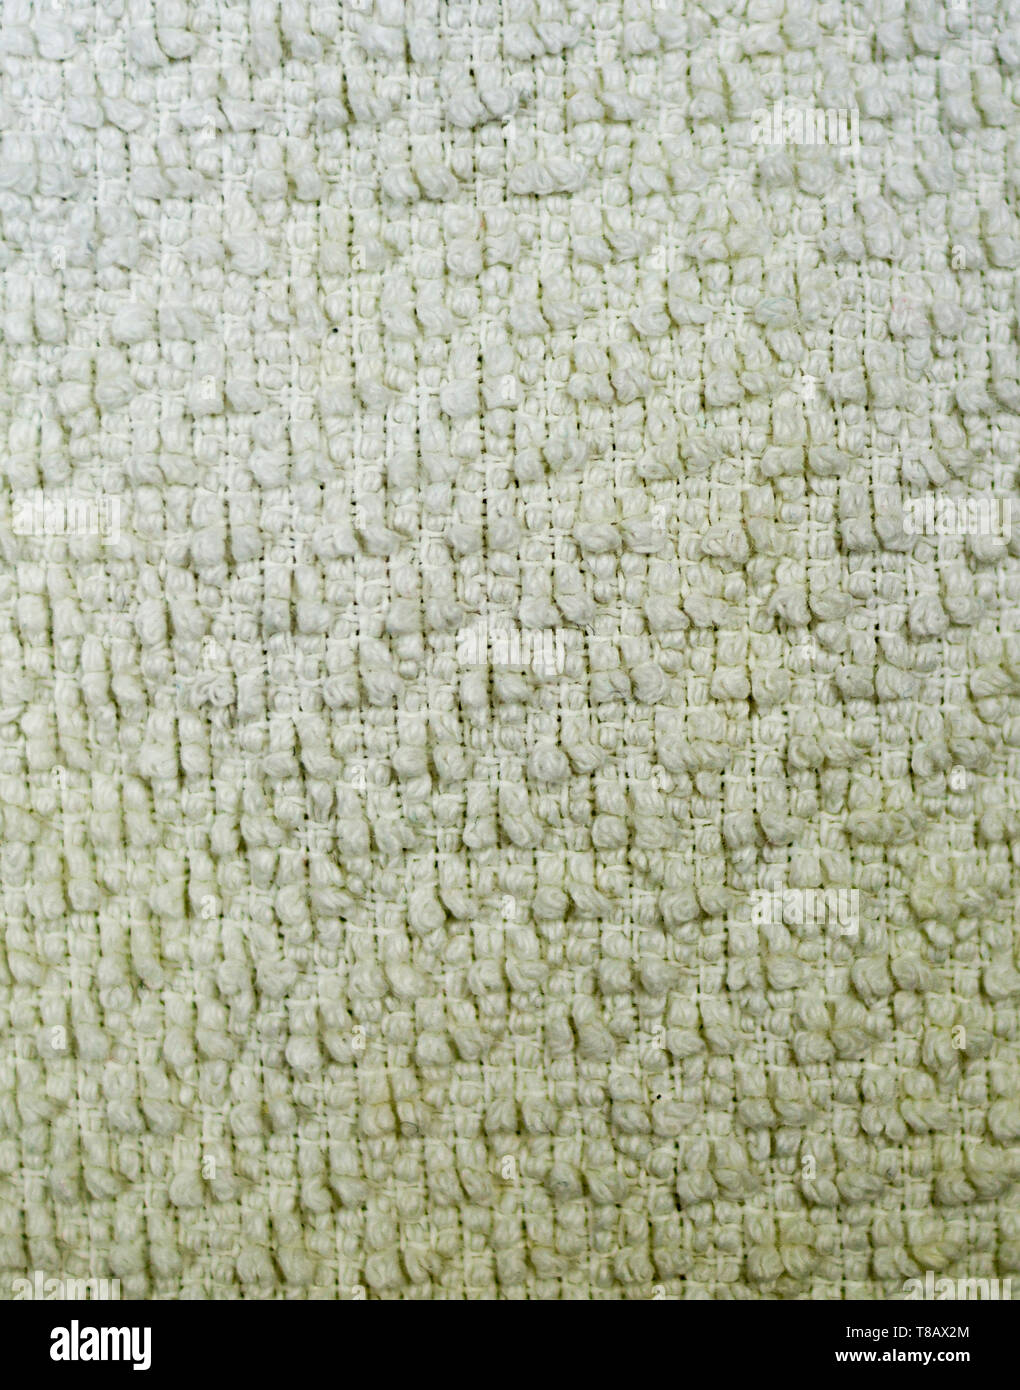 white detailed fabric terry cloth texture close-up